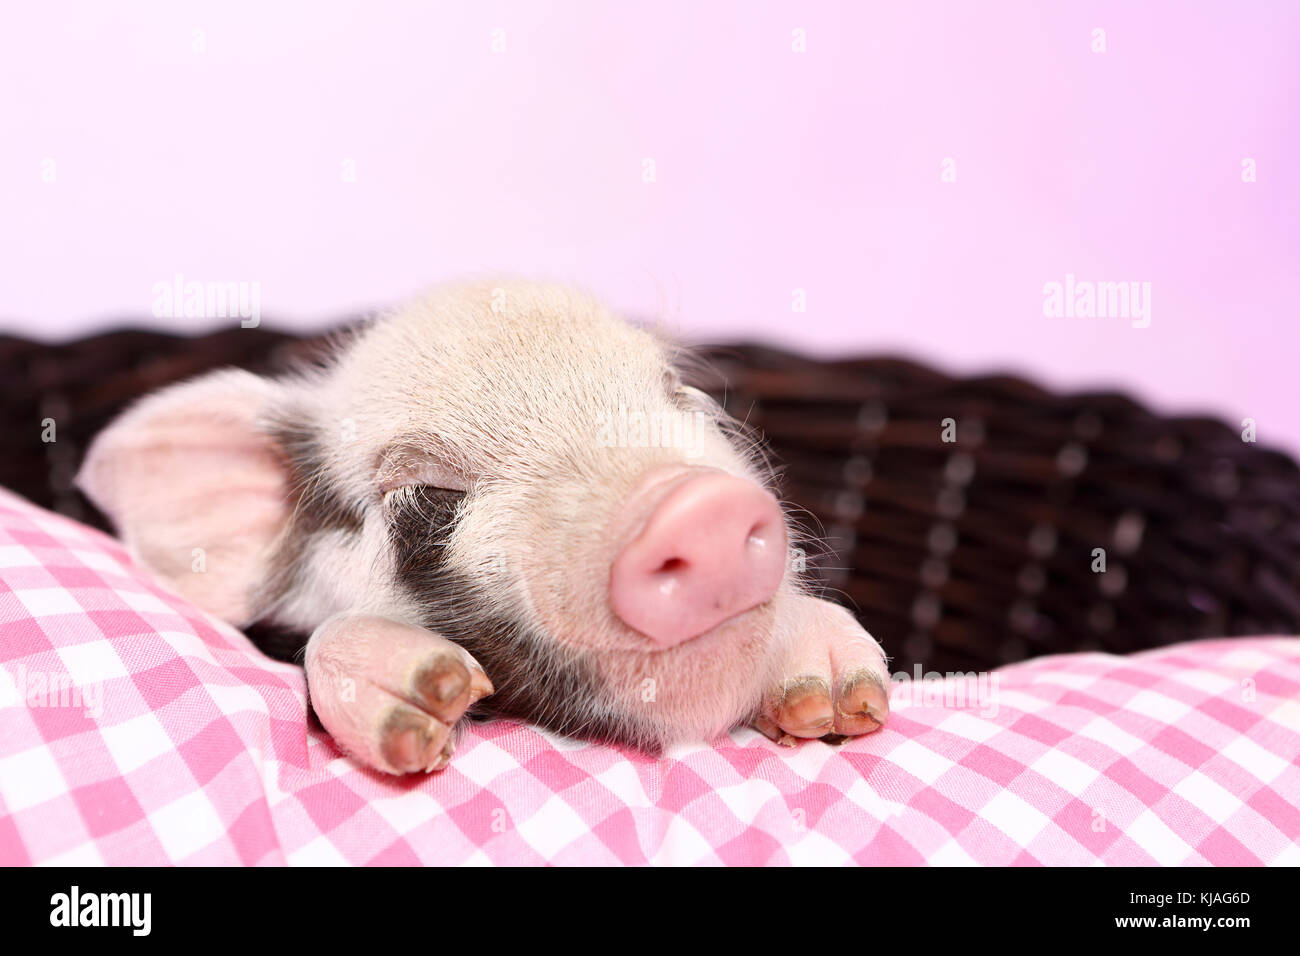 Domestic Pig, Turopolje x ?. Piglet sleeping on pink-checkered pillow in a basket. Studio picture seen against a - Stock Image